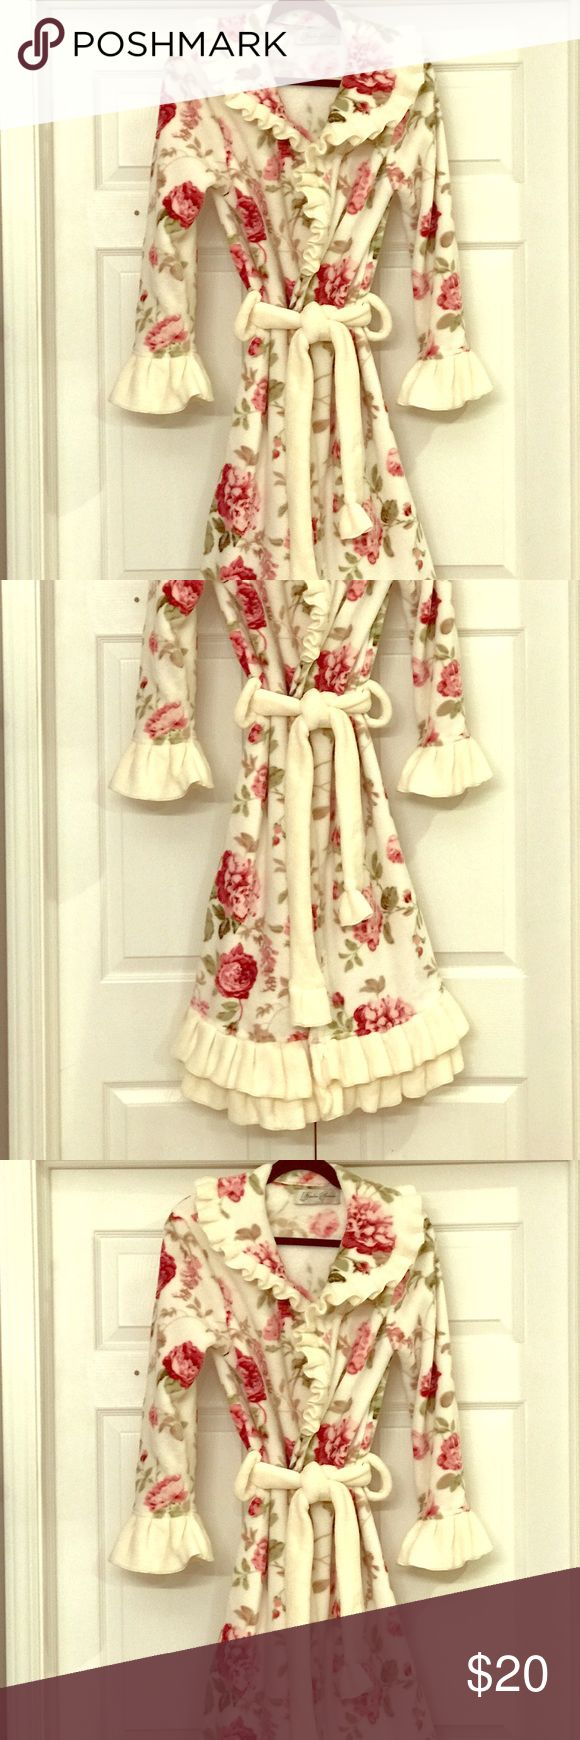 Bathrobe Victorian trading co. Robe. Very soft and cozy micro fiber fabric. Beautiful vintage rose pattern on new item. Gently loved. Intimates & Sleepwear Robes